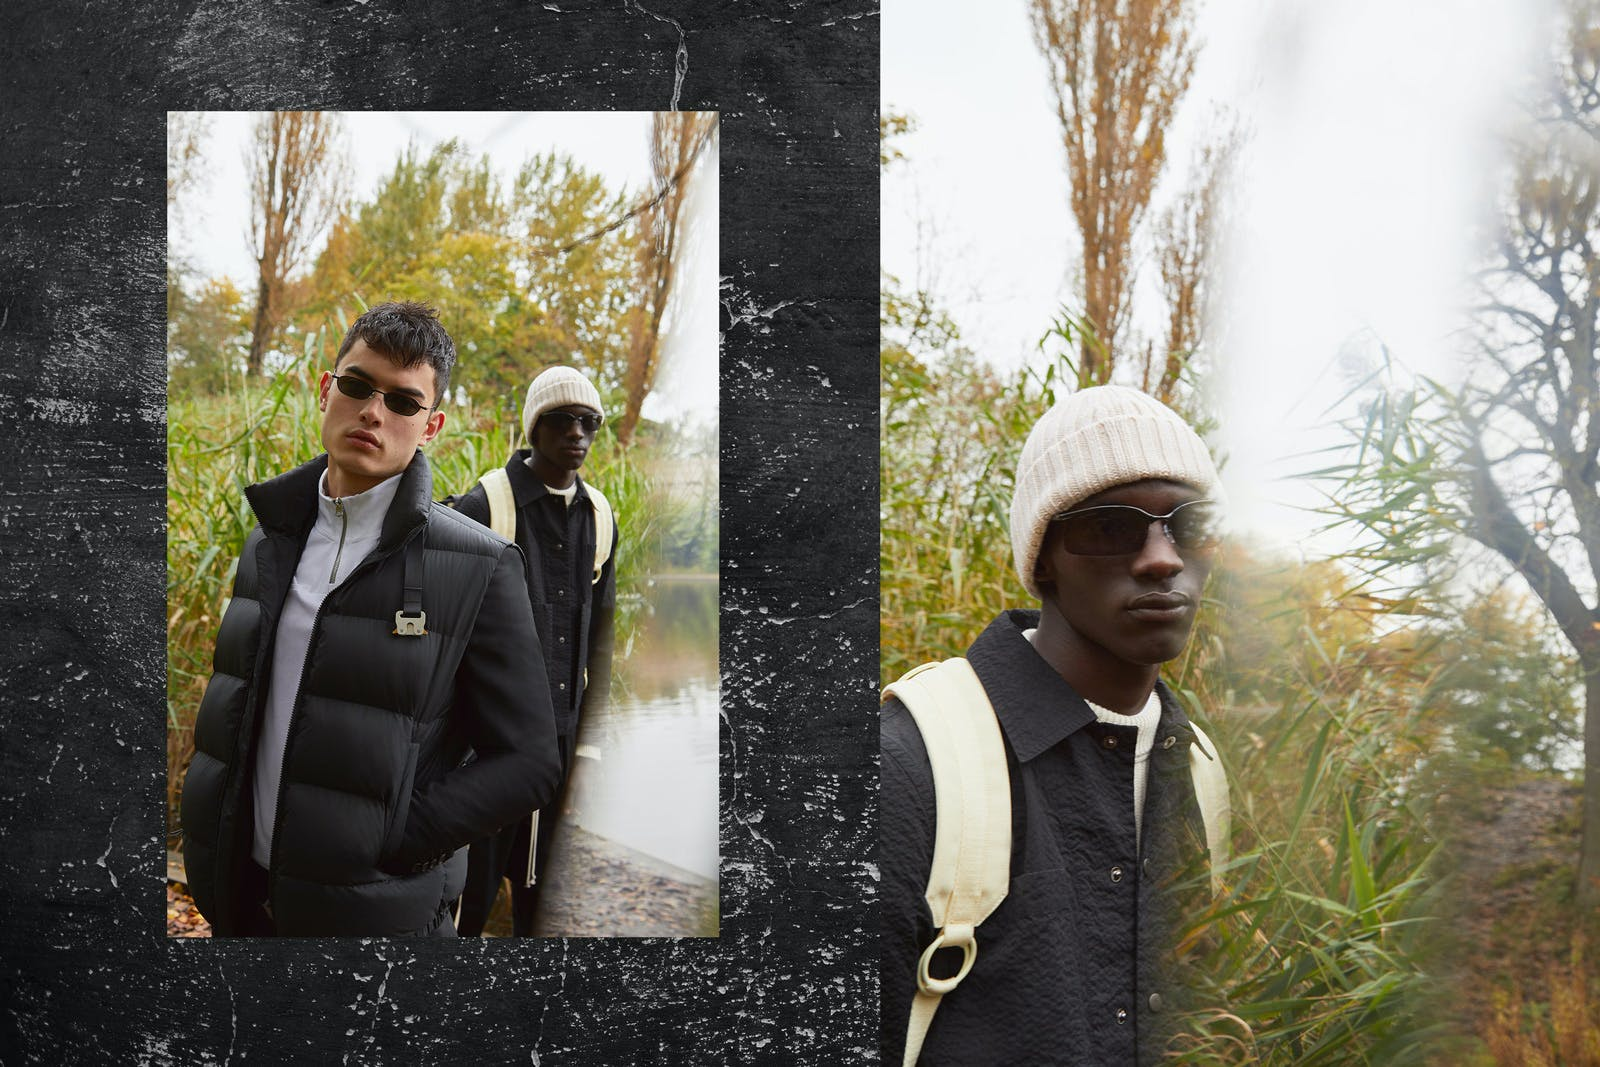 On A Trip END. AW19 Editorial .03 - Models wear Maison Margiela, Rick Owens, 1017 ALYX 9SM, Acne Studios